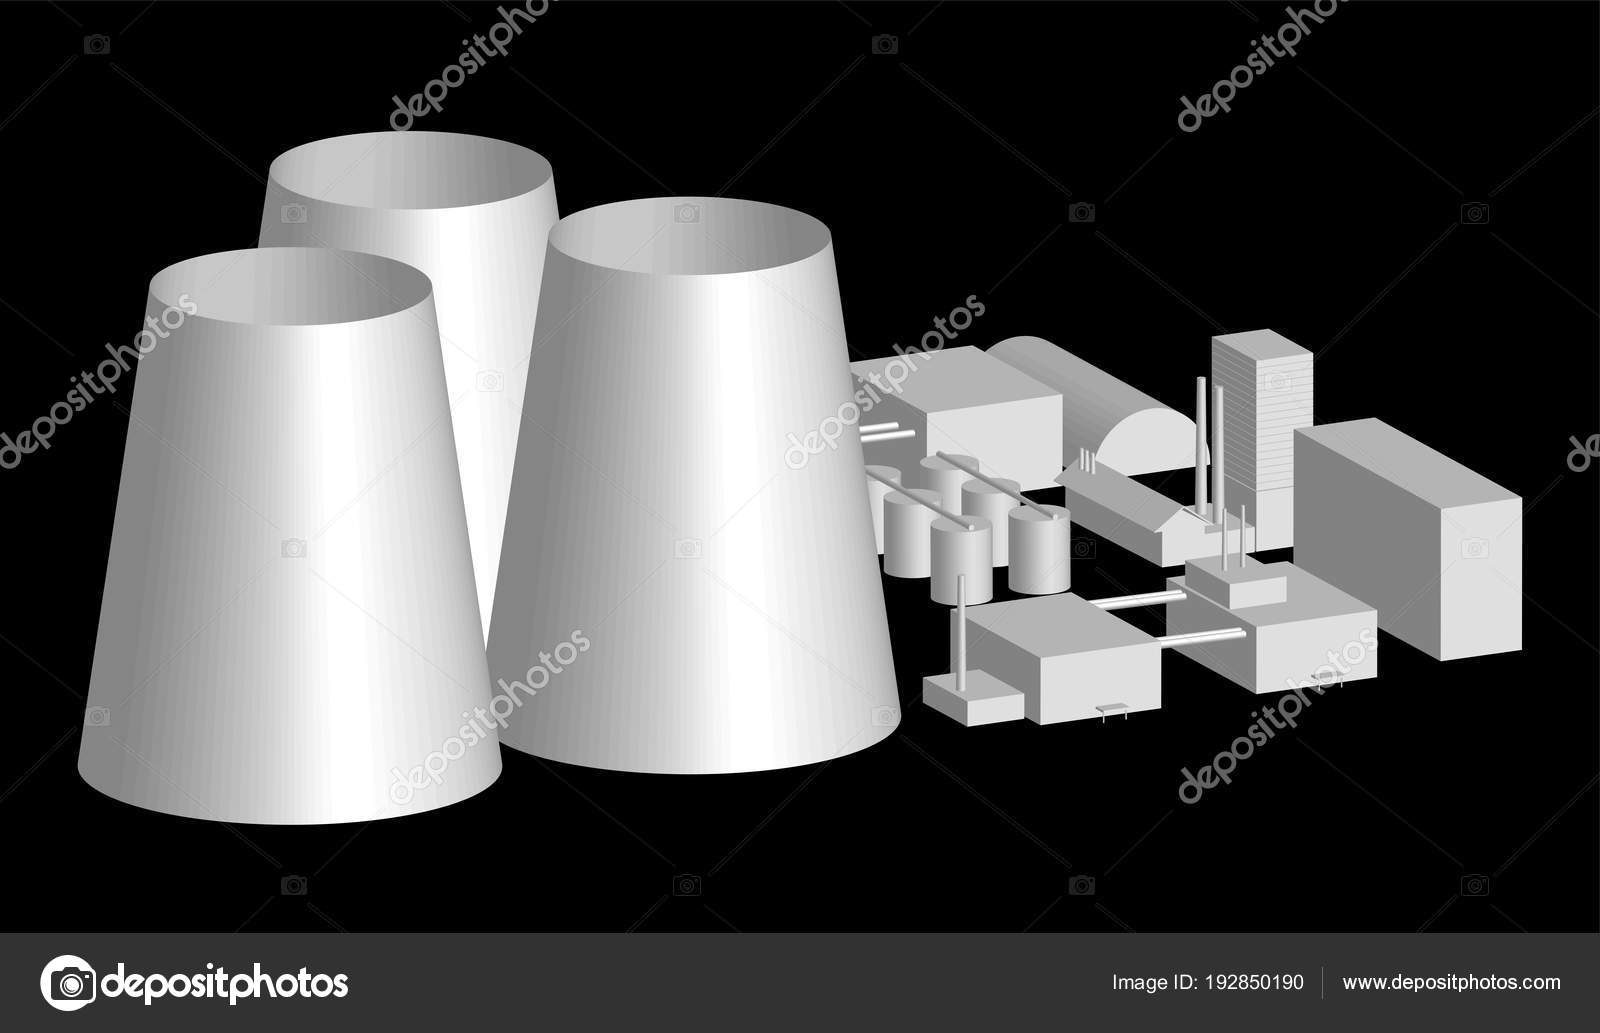 hight resolution of 3d model factory layout power station in an projection 3d illustration of industrial building or factory over black background nuclear power plant layout